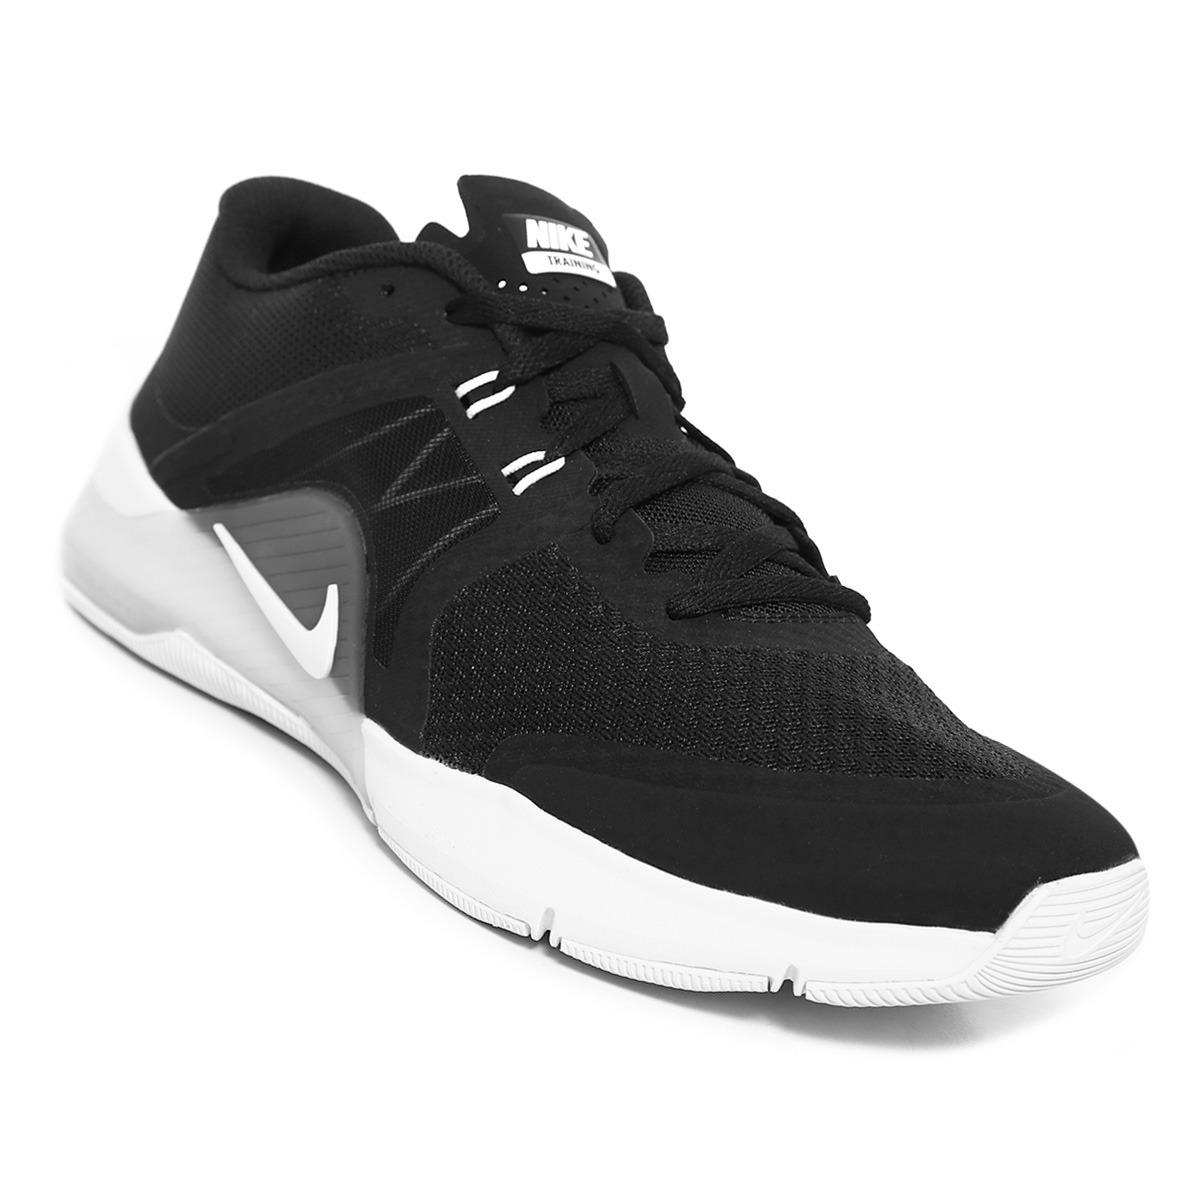 3174f026202b Tenis Nike Zoom Train Complete 2 Para Hombre. Running 2018 ...